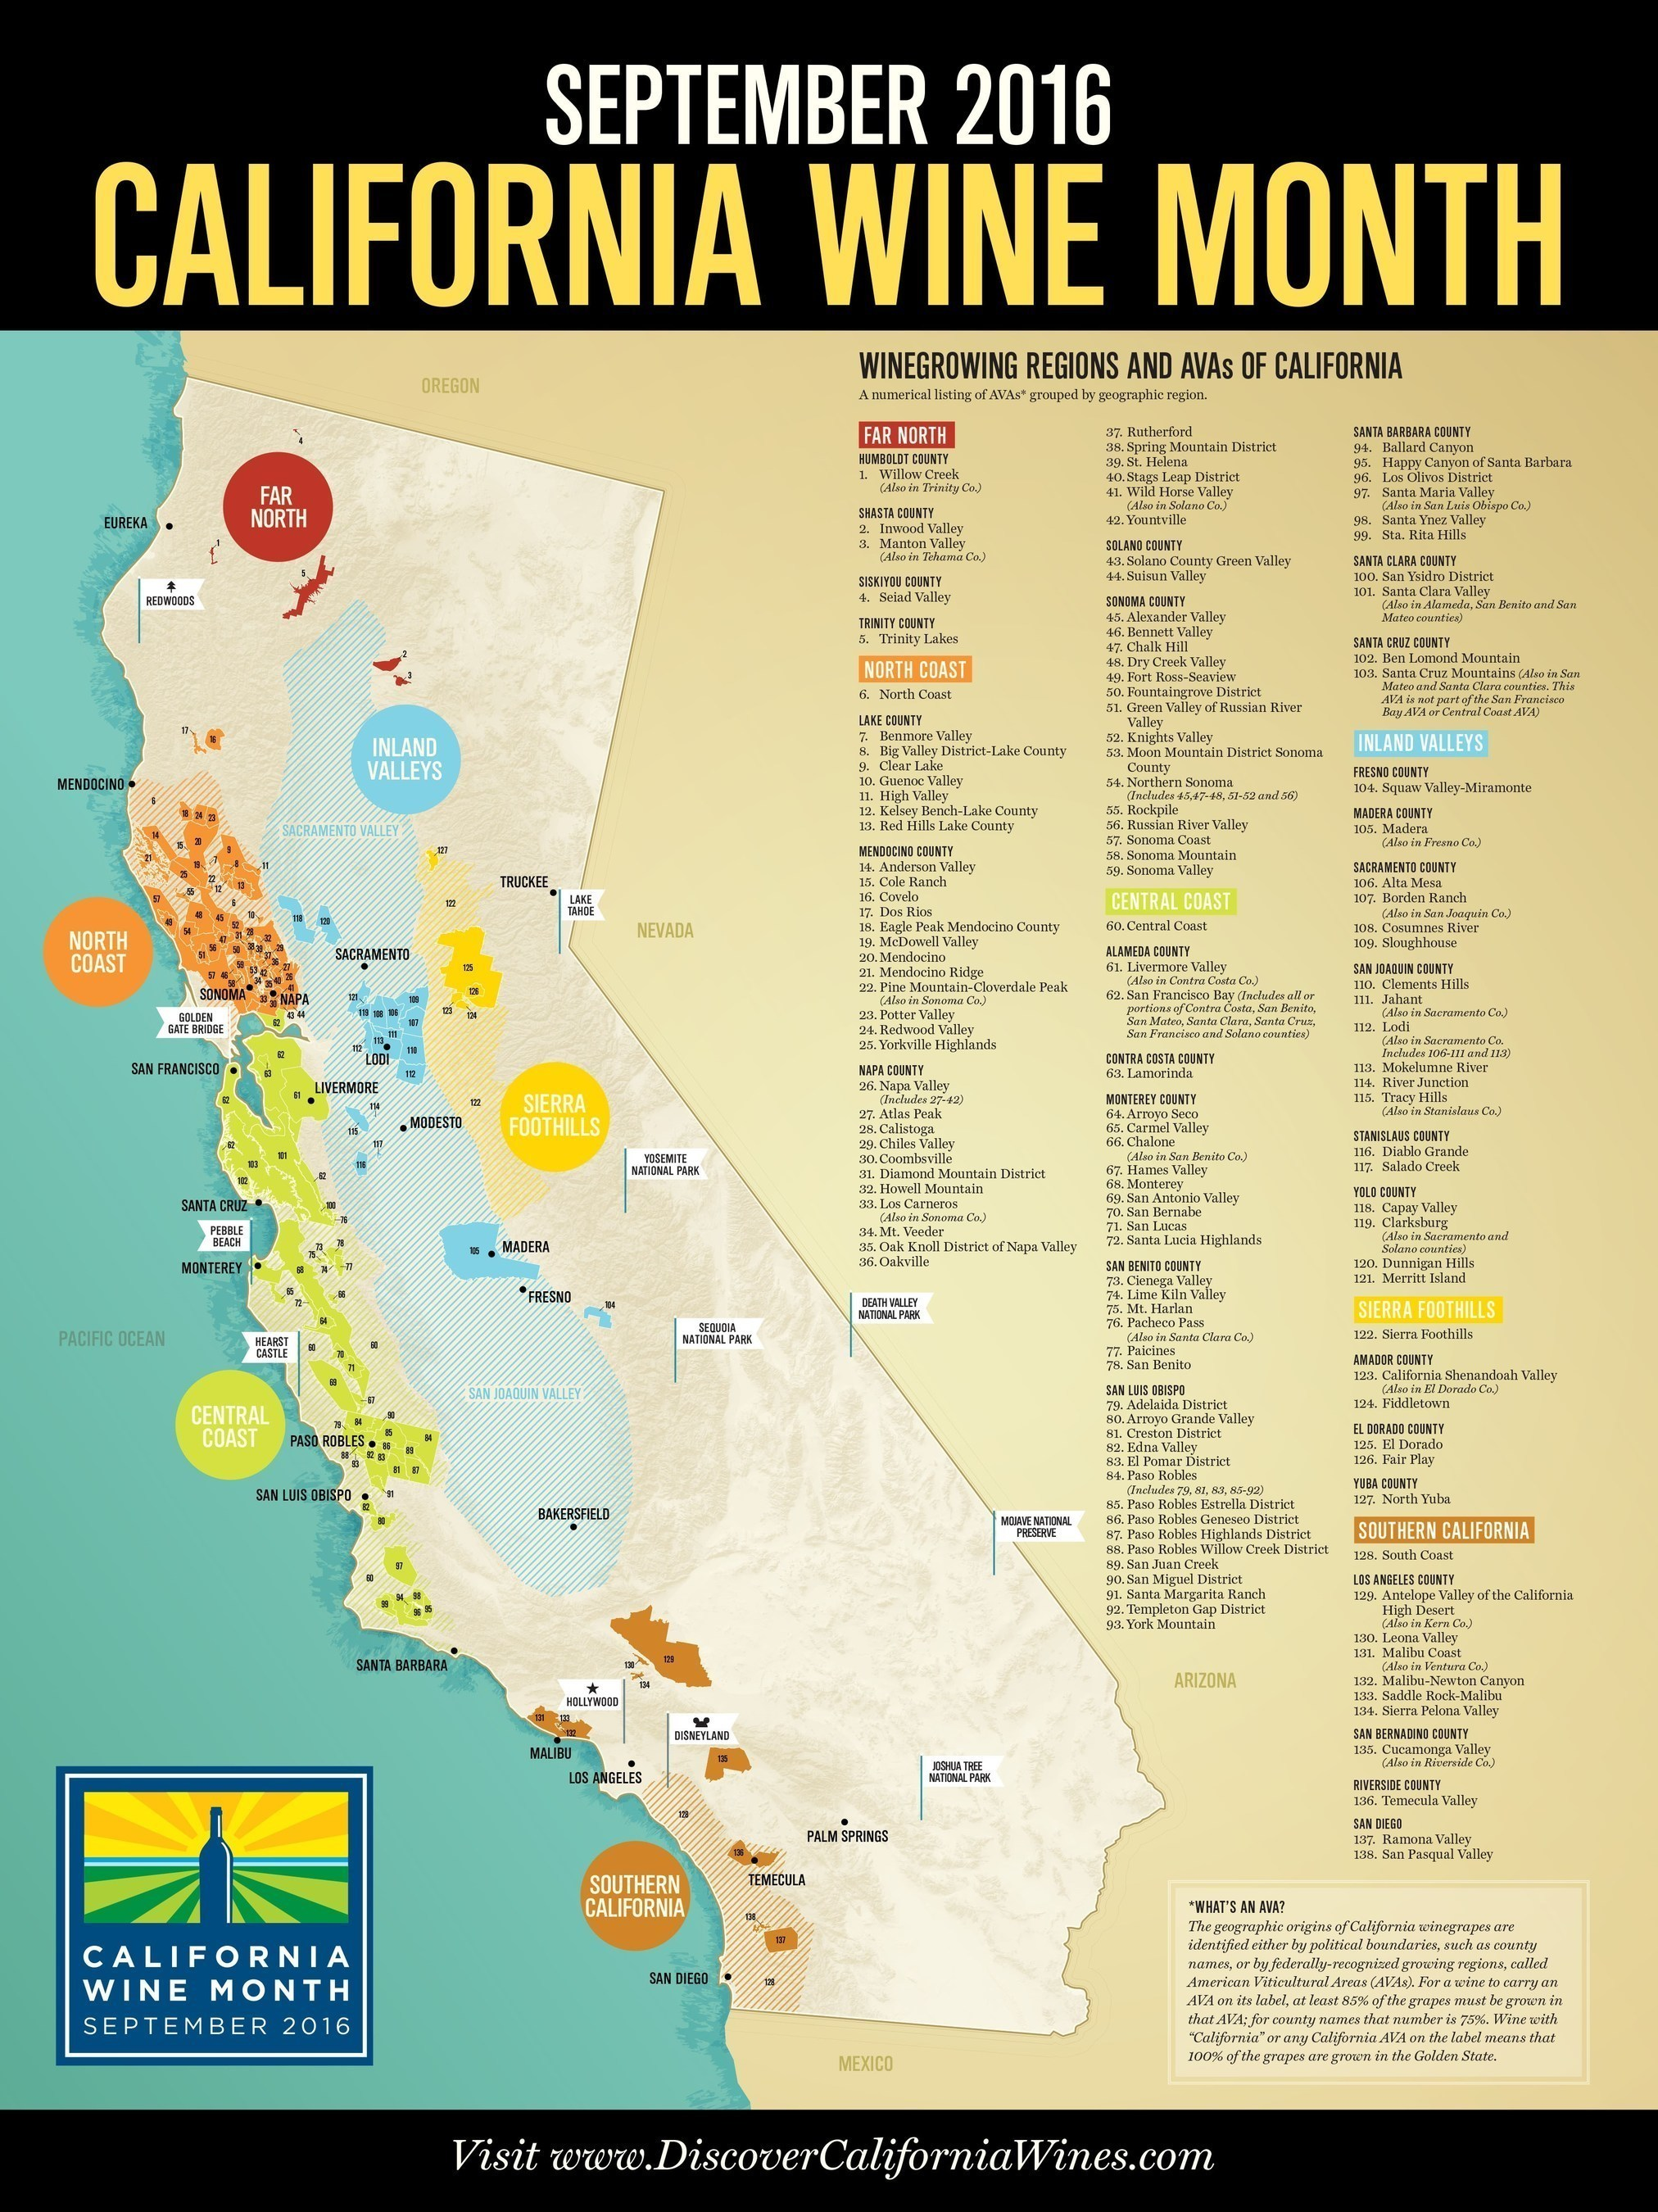 Cheers to California Wine Month this September on